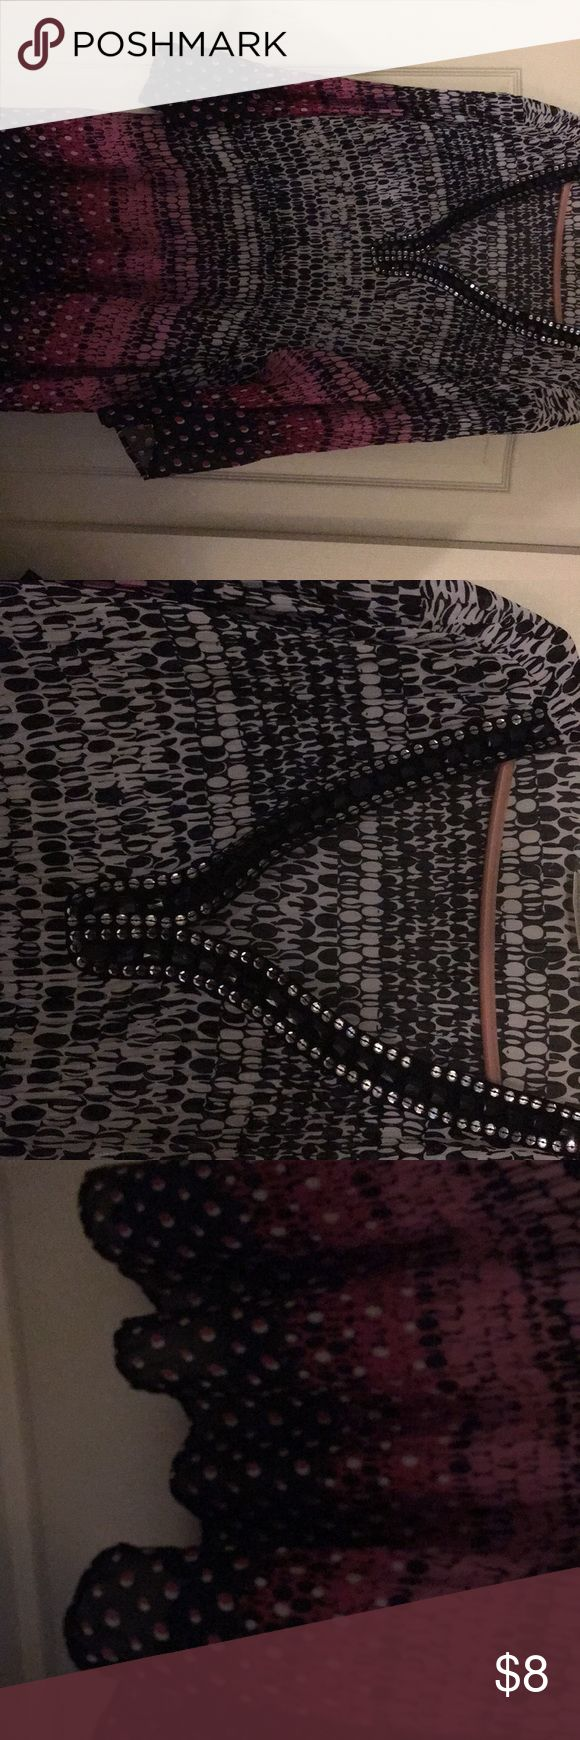 Sz 30/32 pink black top from the avenue Pullover.  Stones and sequins around the neckline.  Has a puckered look to it Avenue Tops Blouses